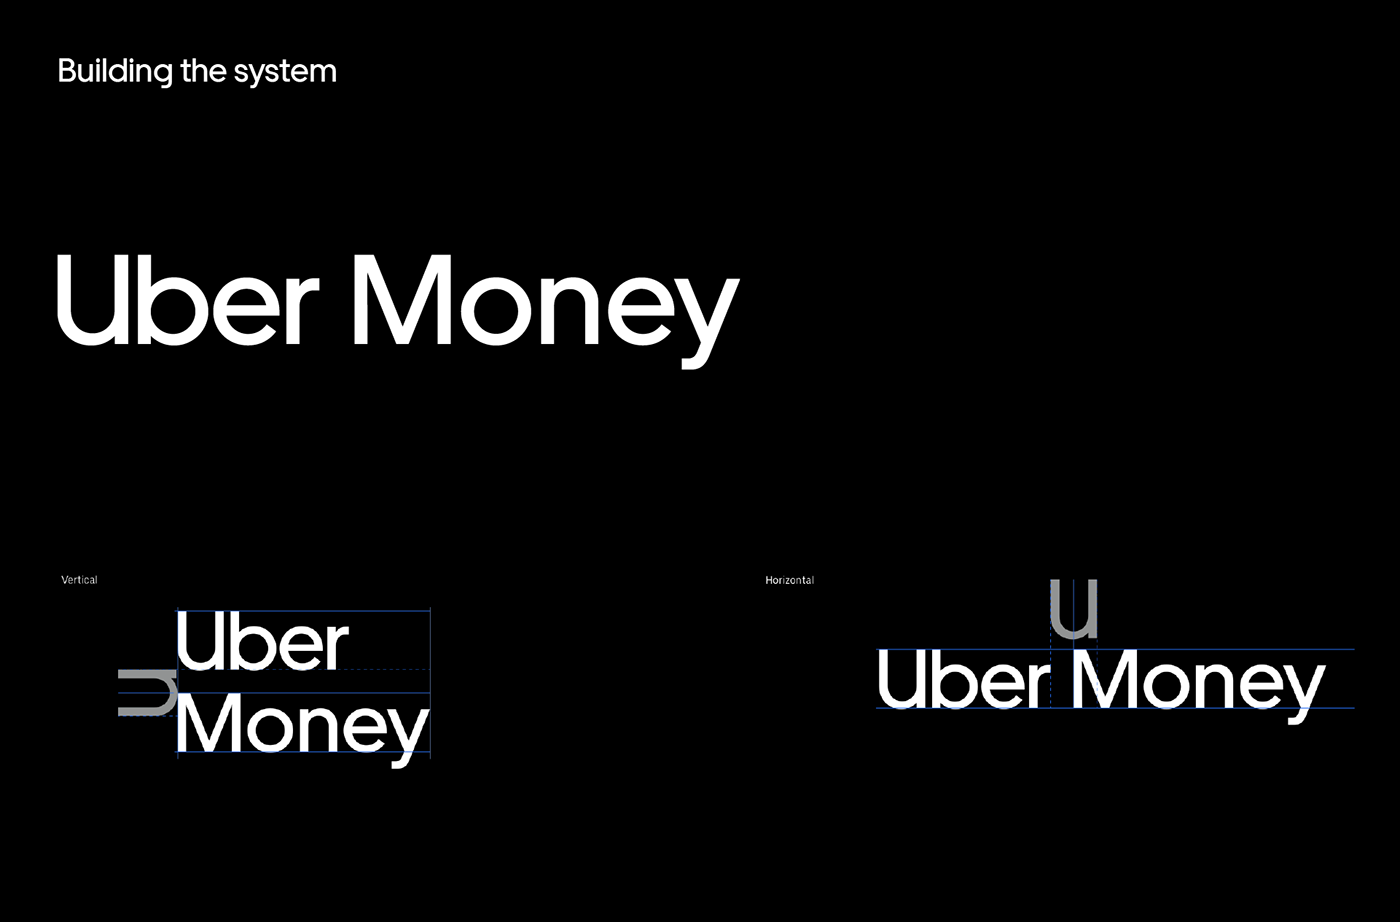 brand identity credit card Debit card foil money product uxdesign uidesign financialproduct Uber